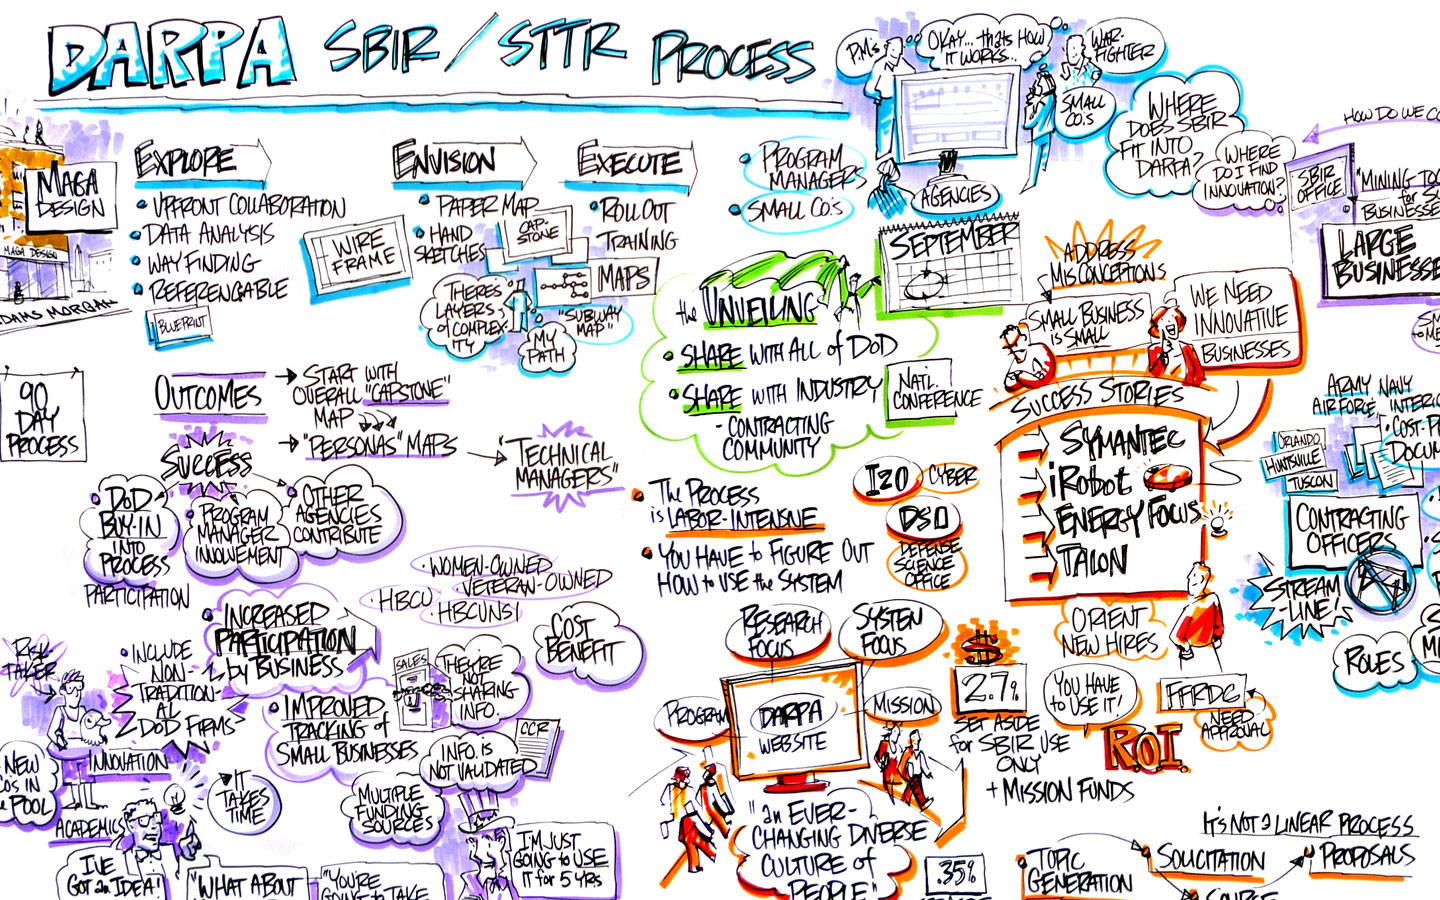 SBIR Process Mapping and Communications Program